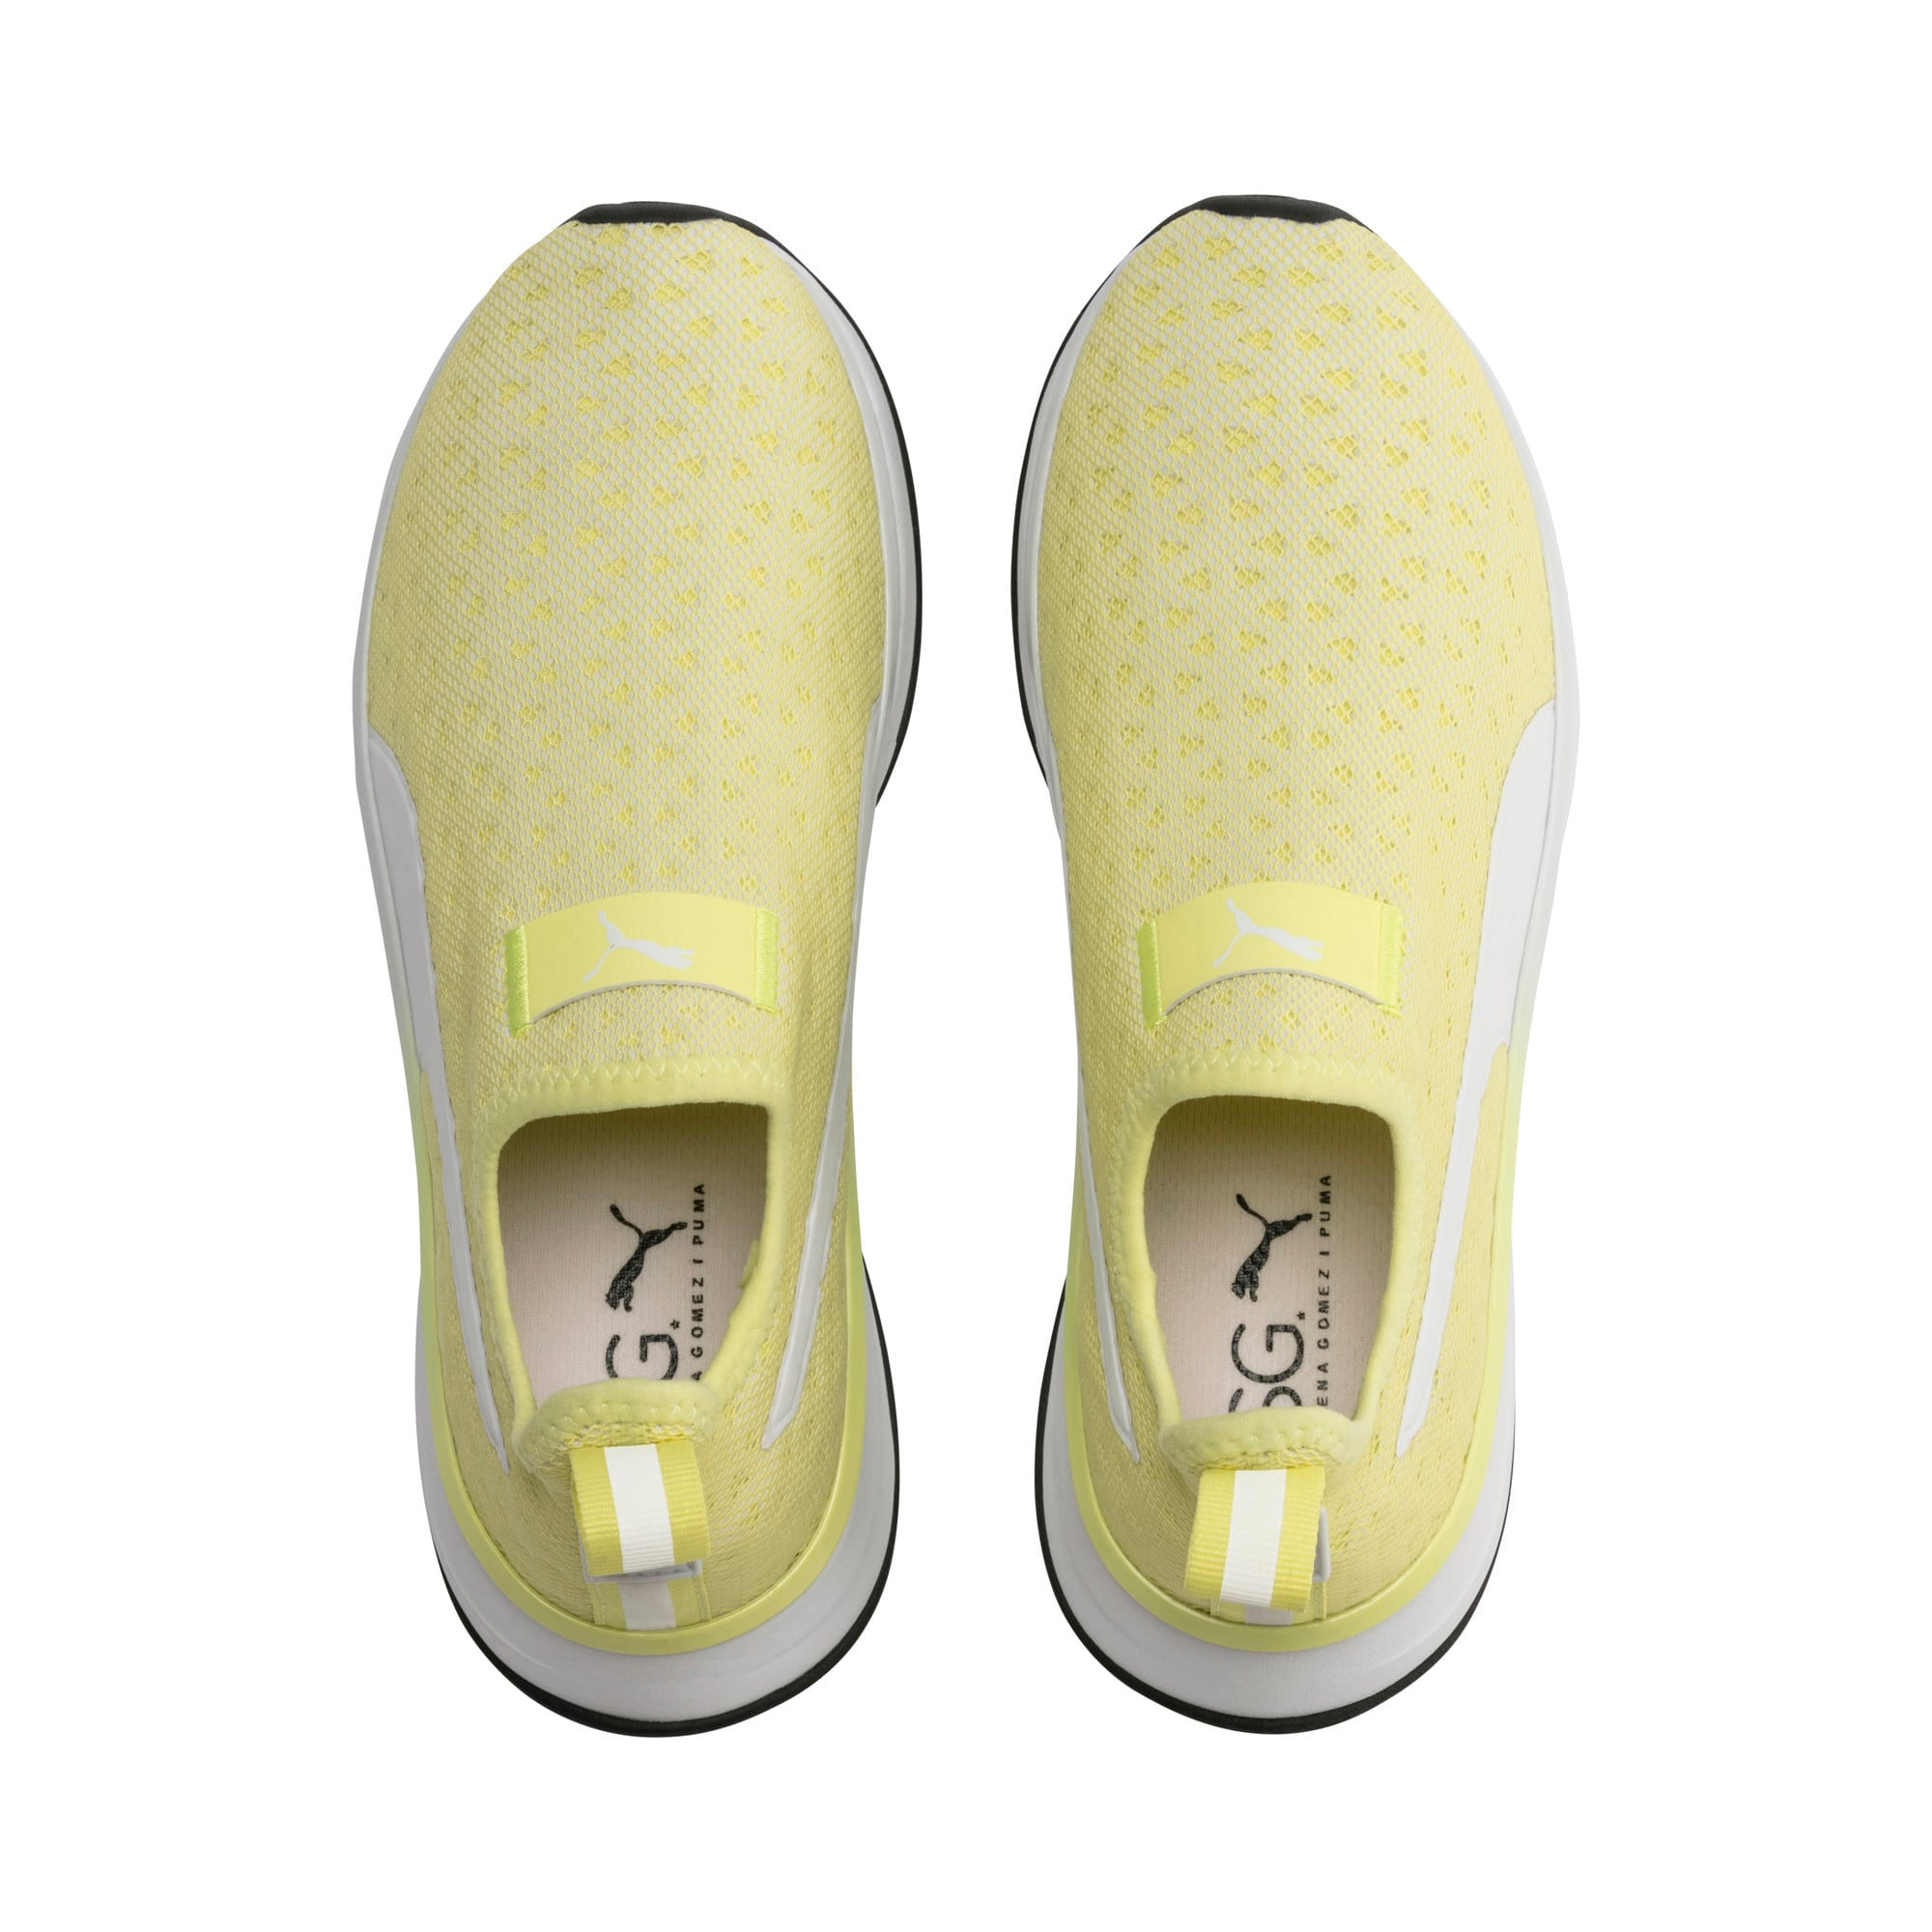 Thumbnail 7 of SG Slip-on Bright Women's Training Shoes, YELLOW-Puma White-Puma Black, medium